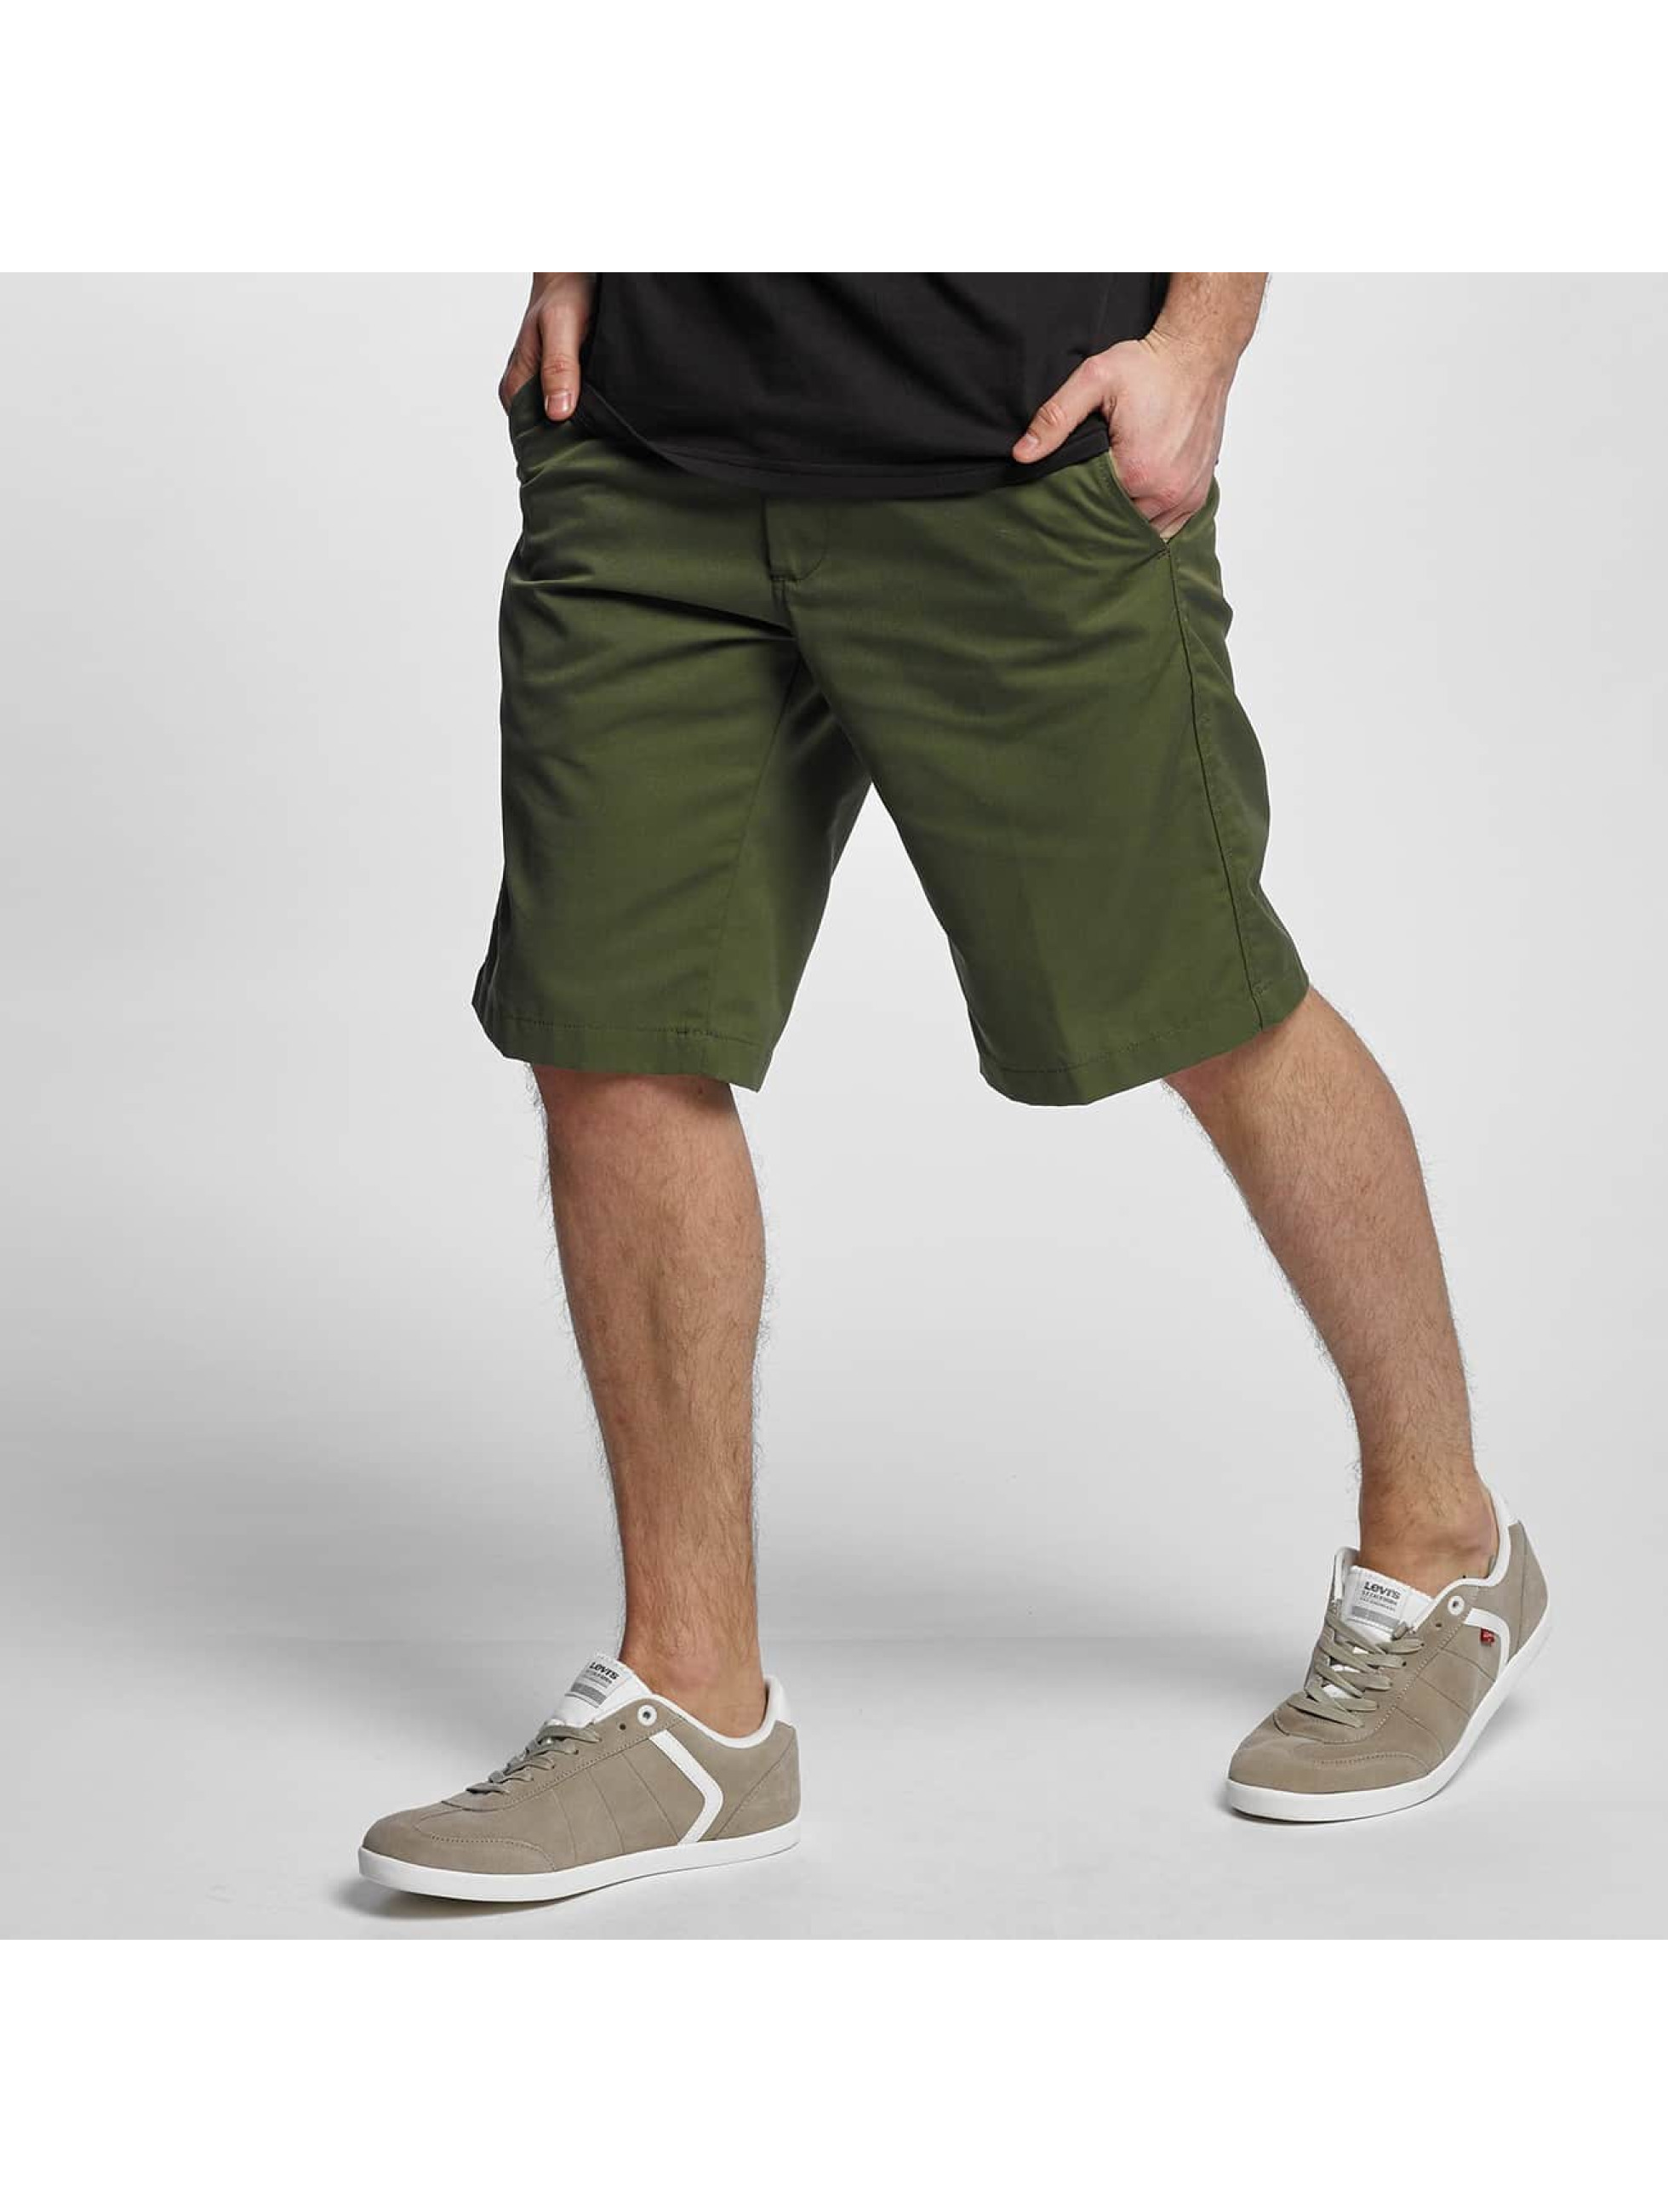 Carhartt WIP Shorts Presenter grün